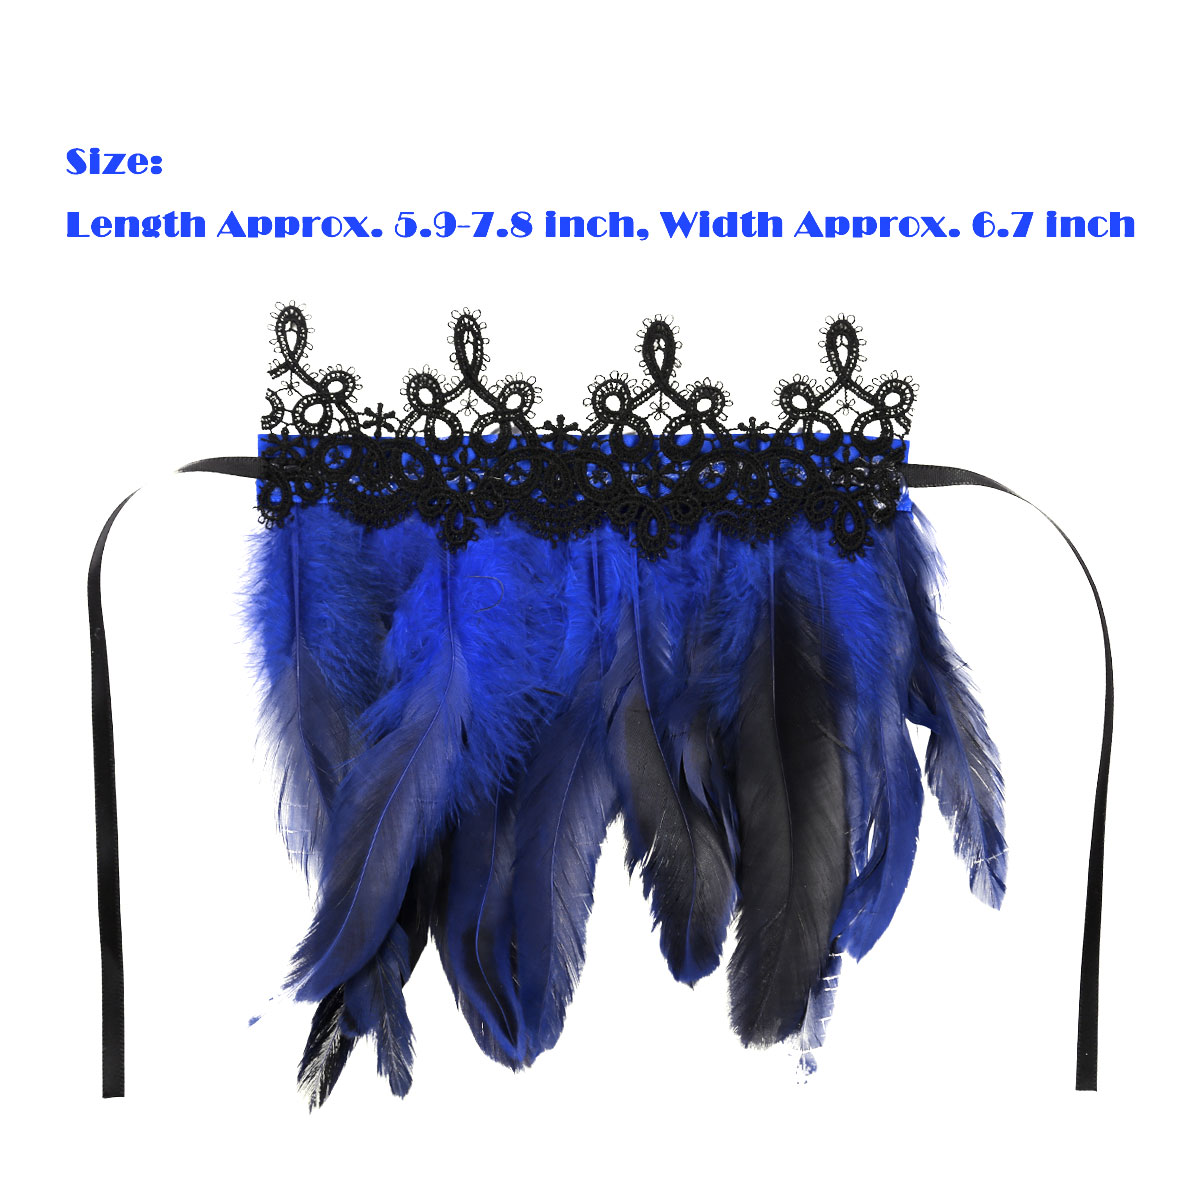 Details about  /US/_2Pcs Rooster Feather Wrist Cuffs Sleeve with Ribbon Ties Halloween Party Tool